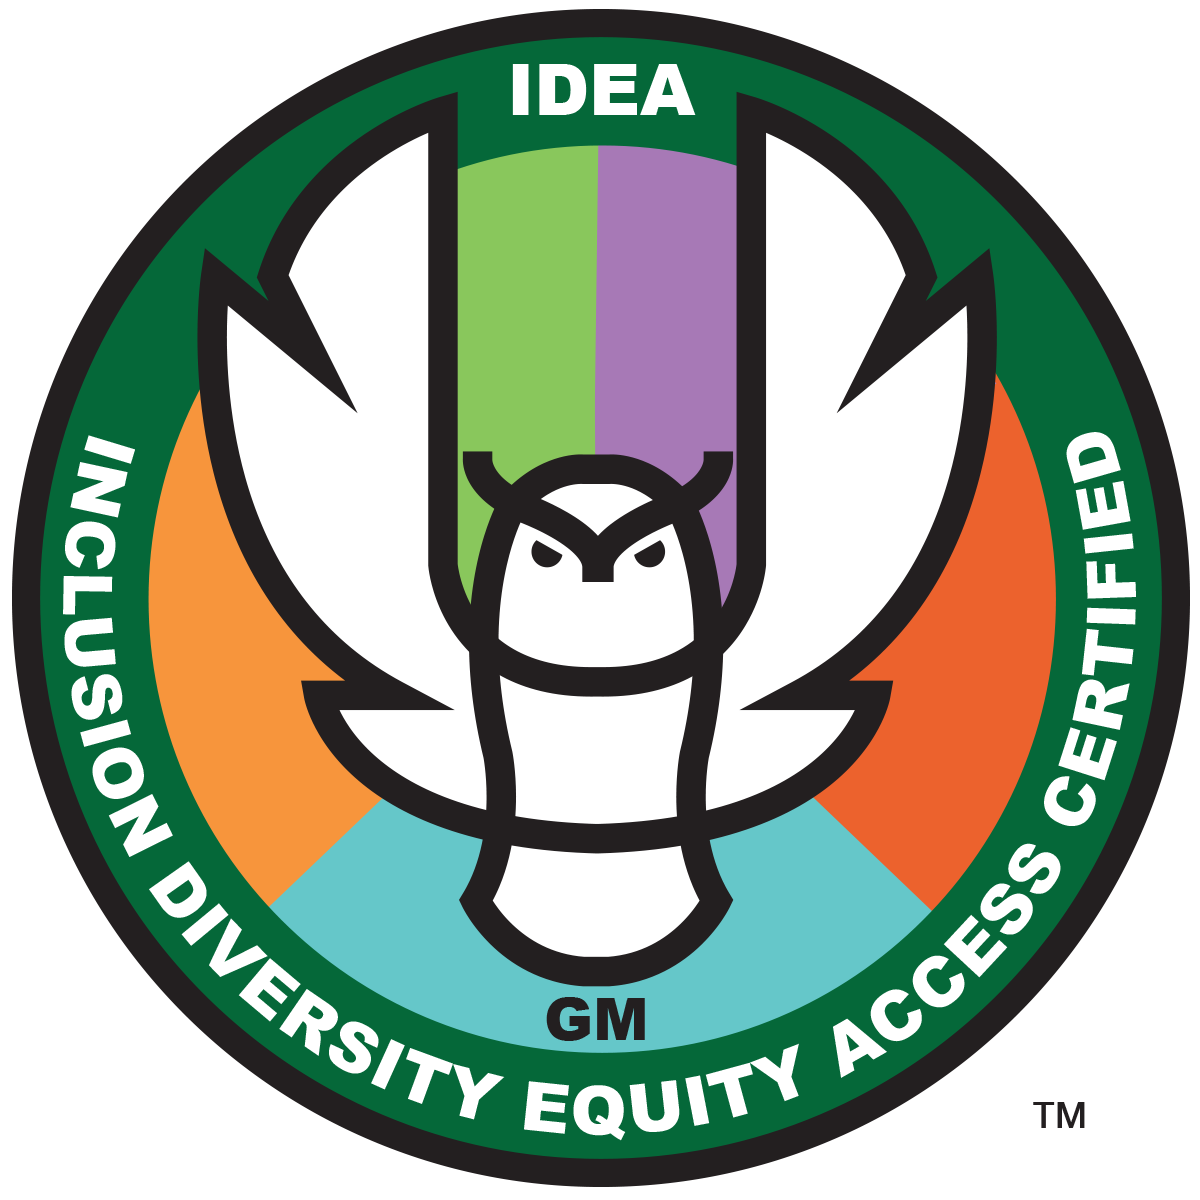 Inclusion Diversity Equity Access Certified - GordonMeeker